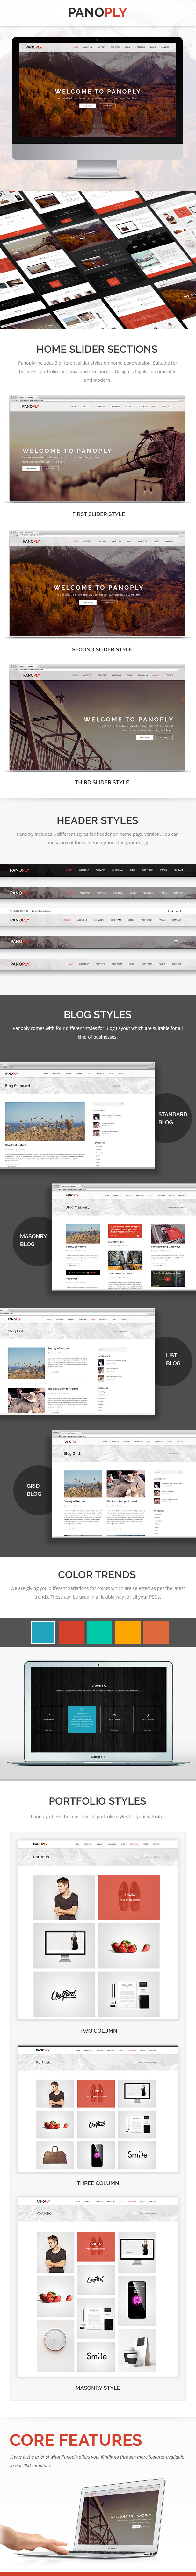 Panoply - Creative One Page Multipurpose PSD Template - 1